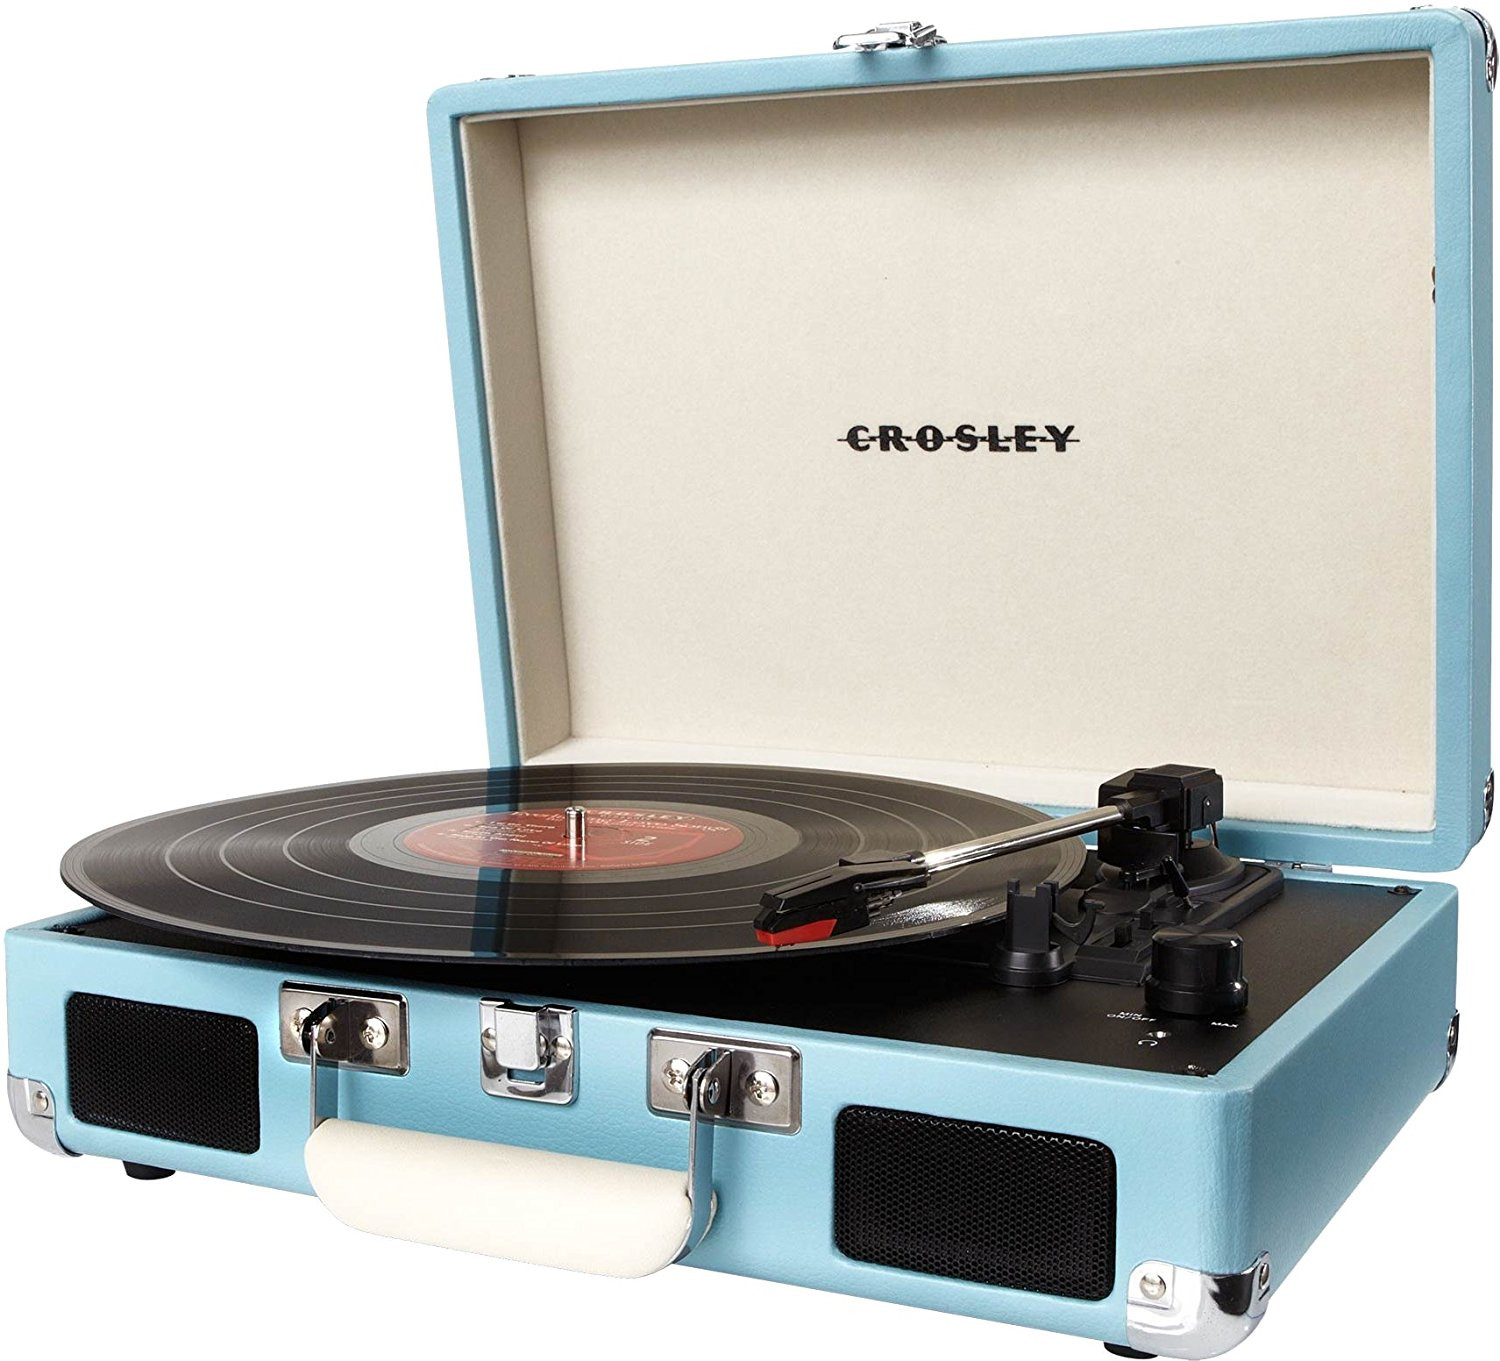 empty vase closter of amazon com crosley cr8005a tu cruiser portable 3 speed turntable inside amazon com crosley cr8005a tu cruiser portable 3 speed turntable turquoise home audio theater